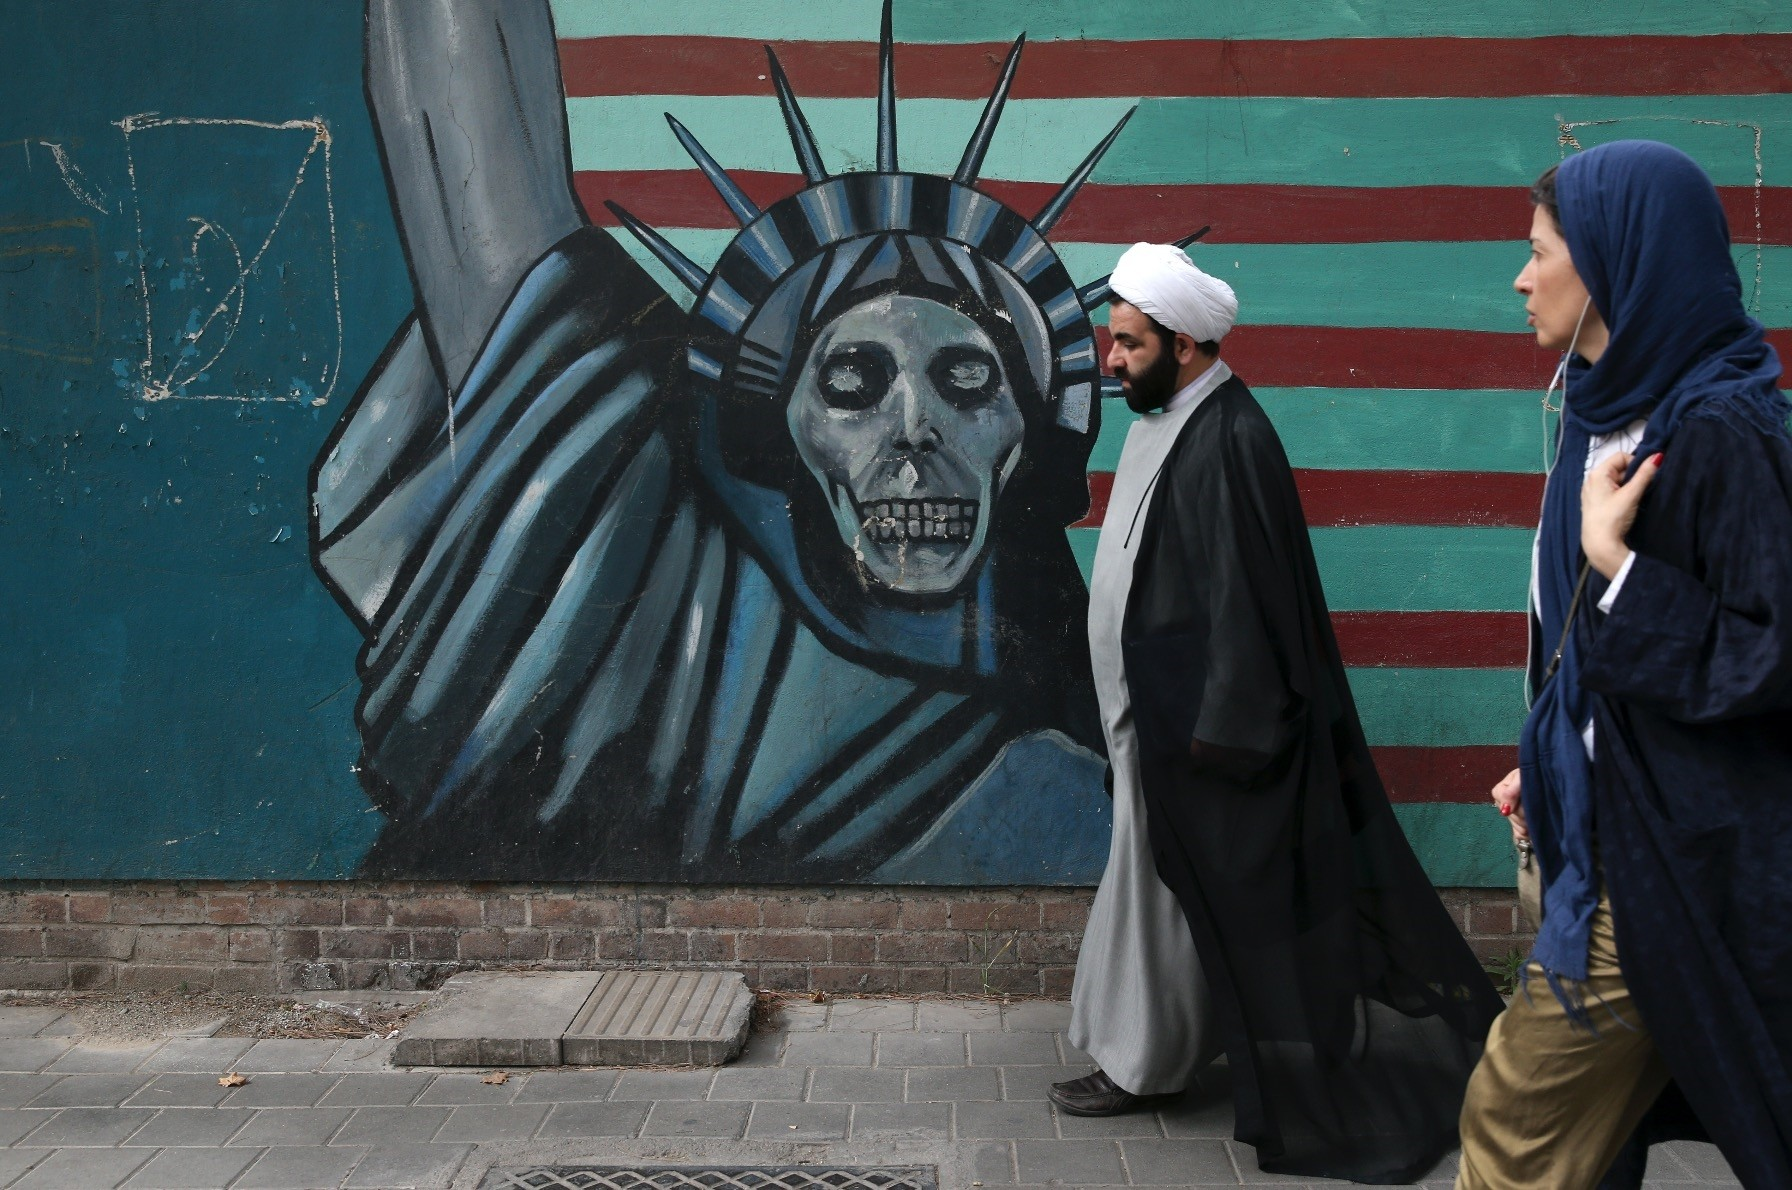 A cleric and a woman walk past an anti-U.S. mural painted on the wall of the former U.S. Embassy in Tehran, Iran, May, 8.